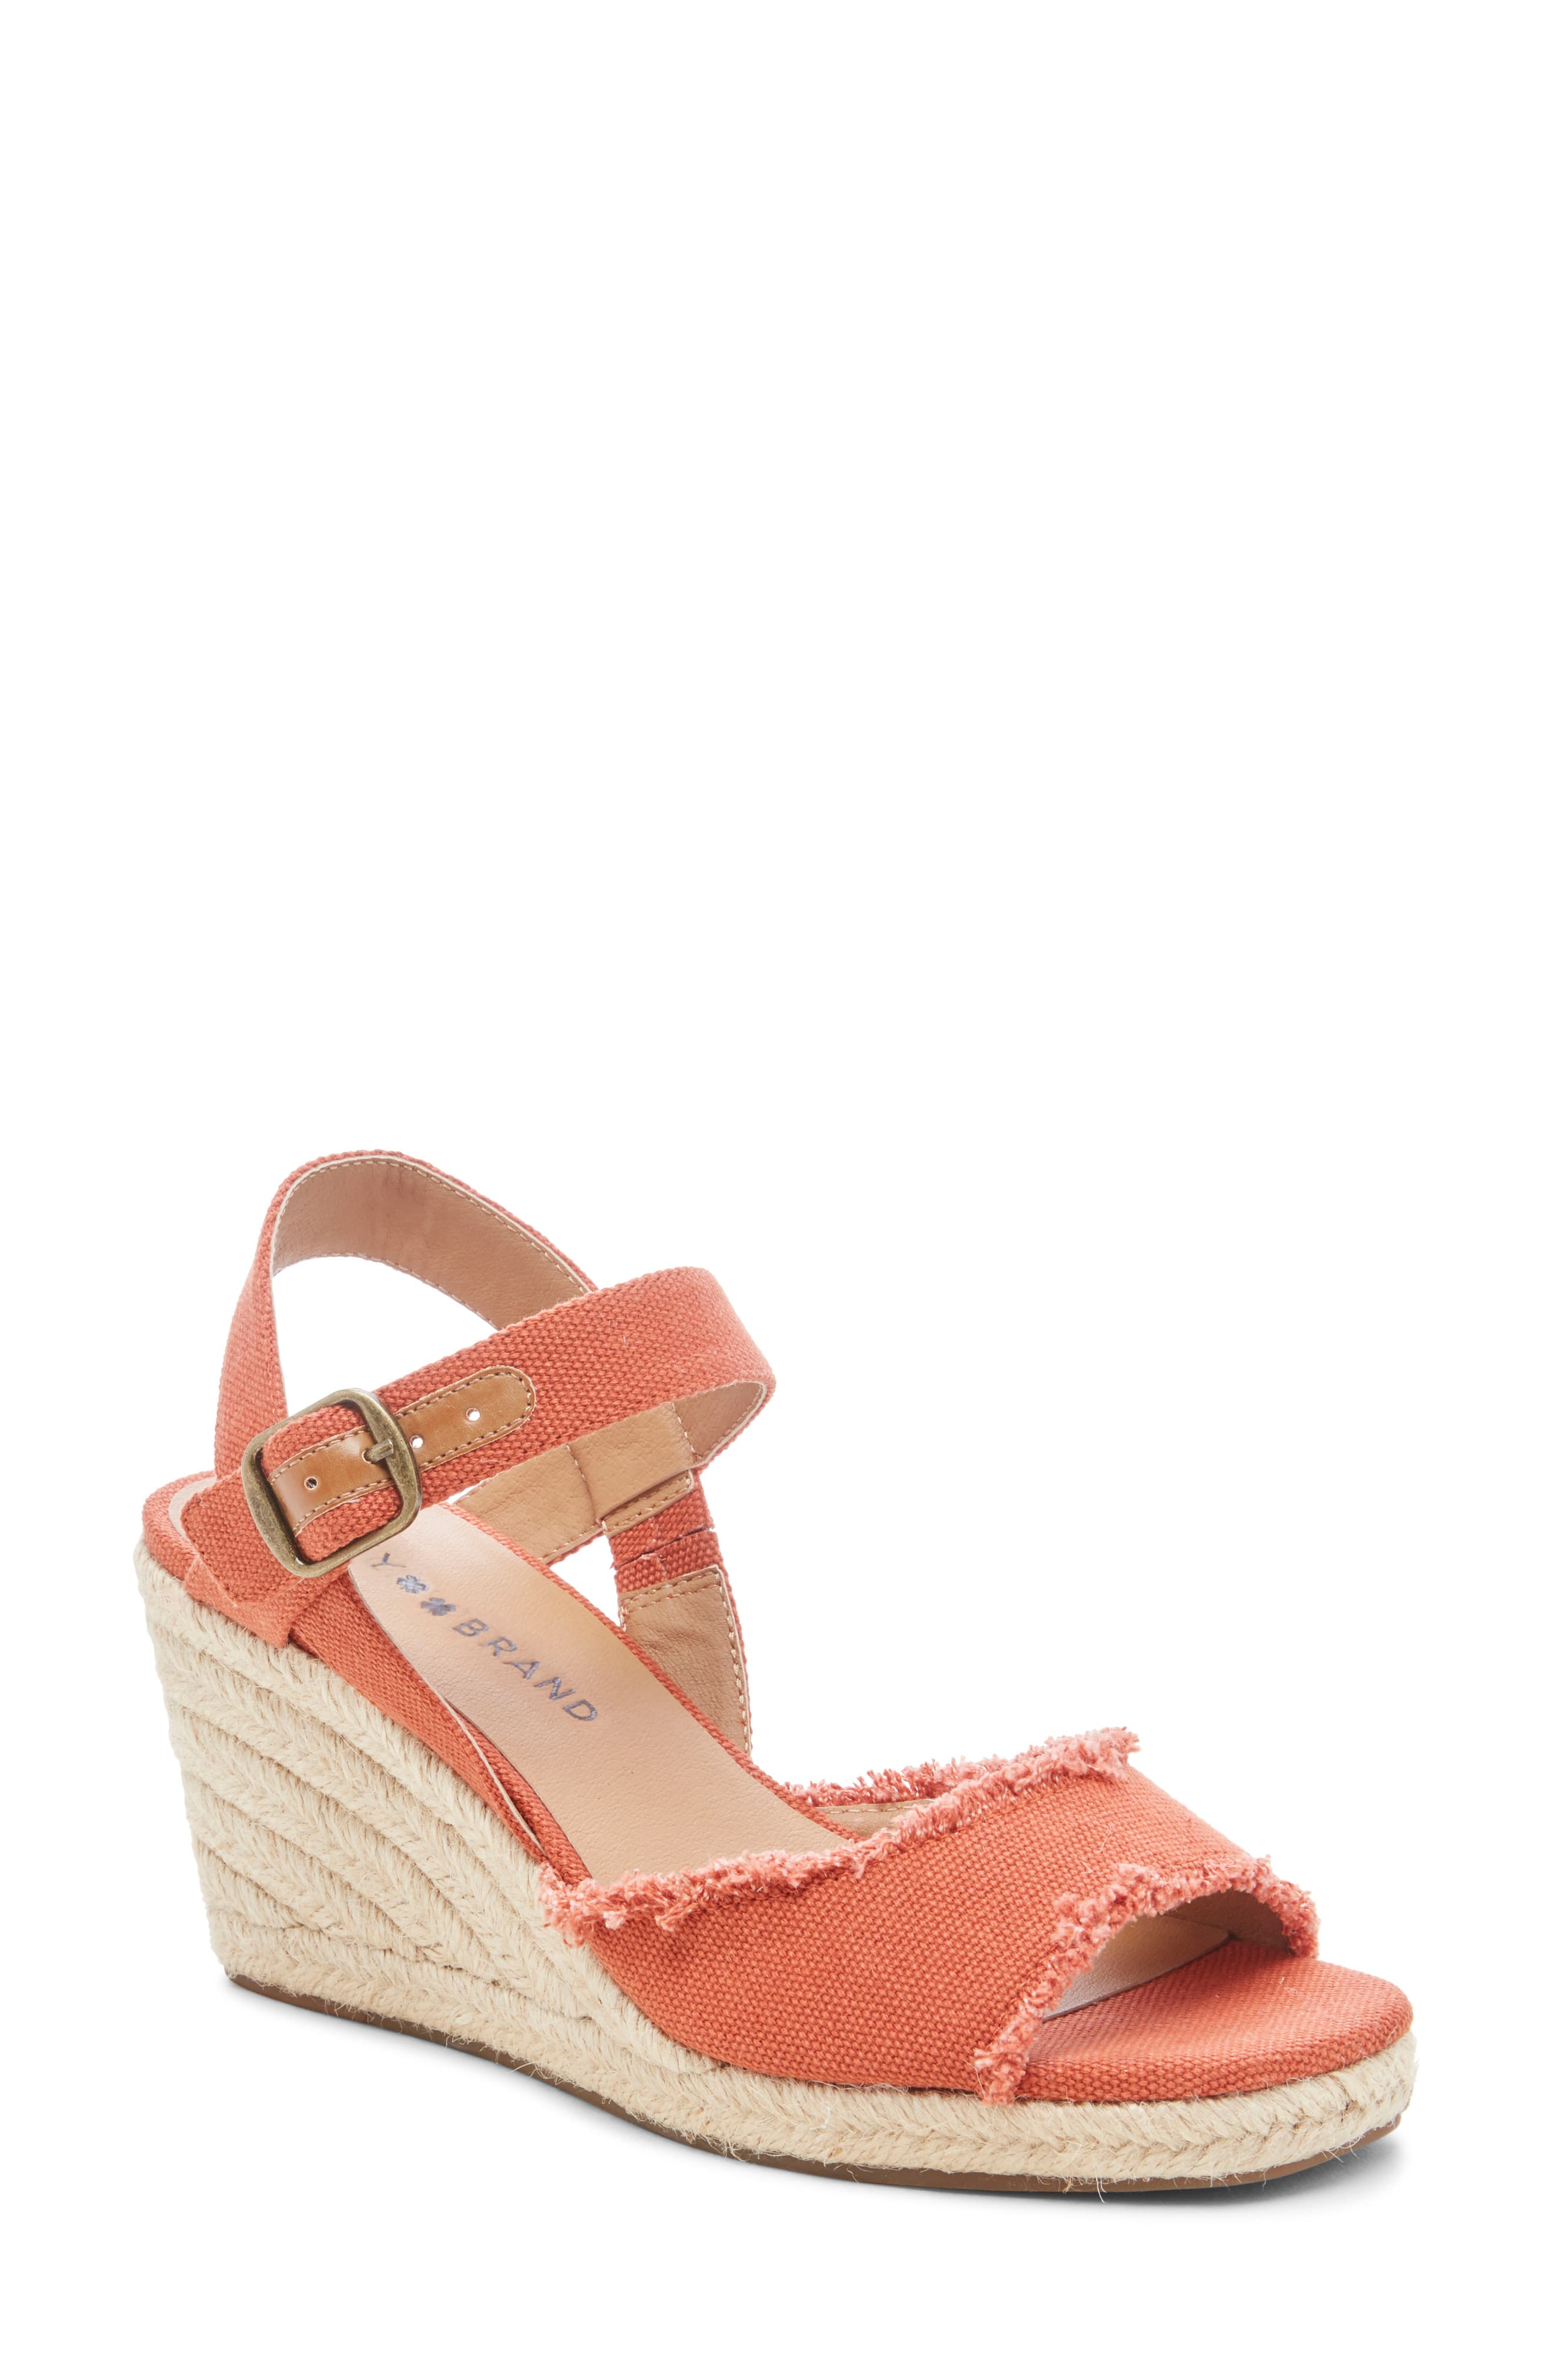 e8d89a6d7df Lucky Brand Mindra Espadrille Wedge Sandal in 2019 | Products ...